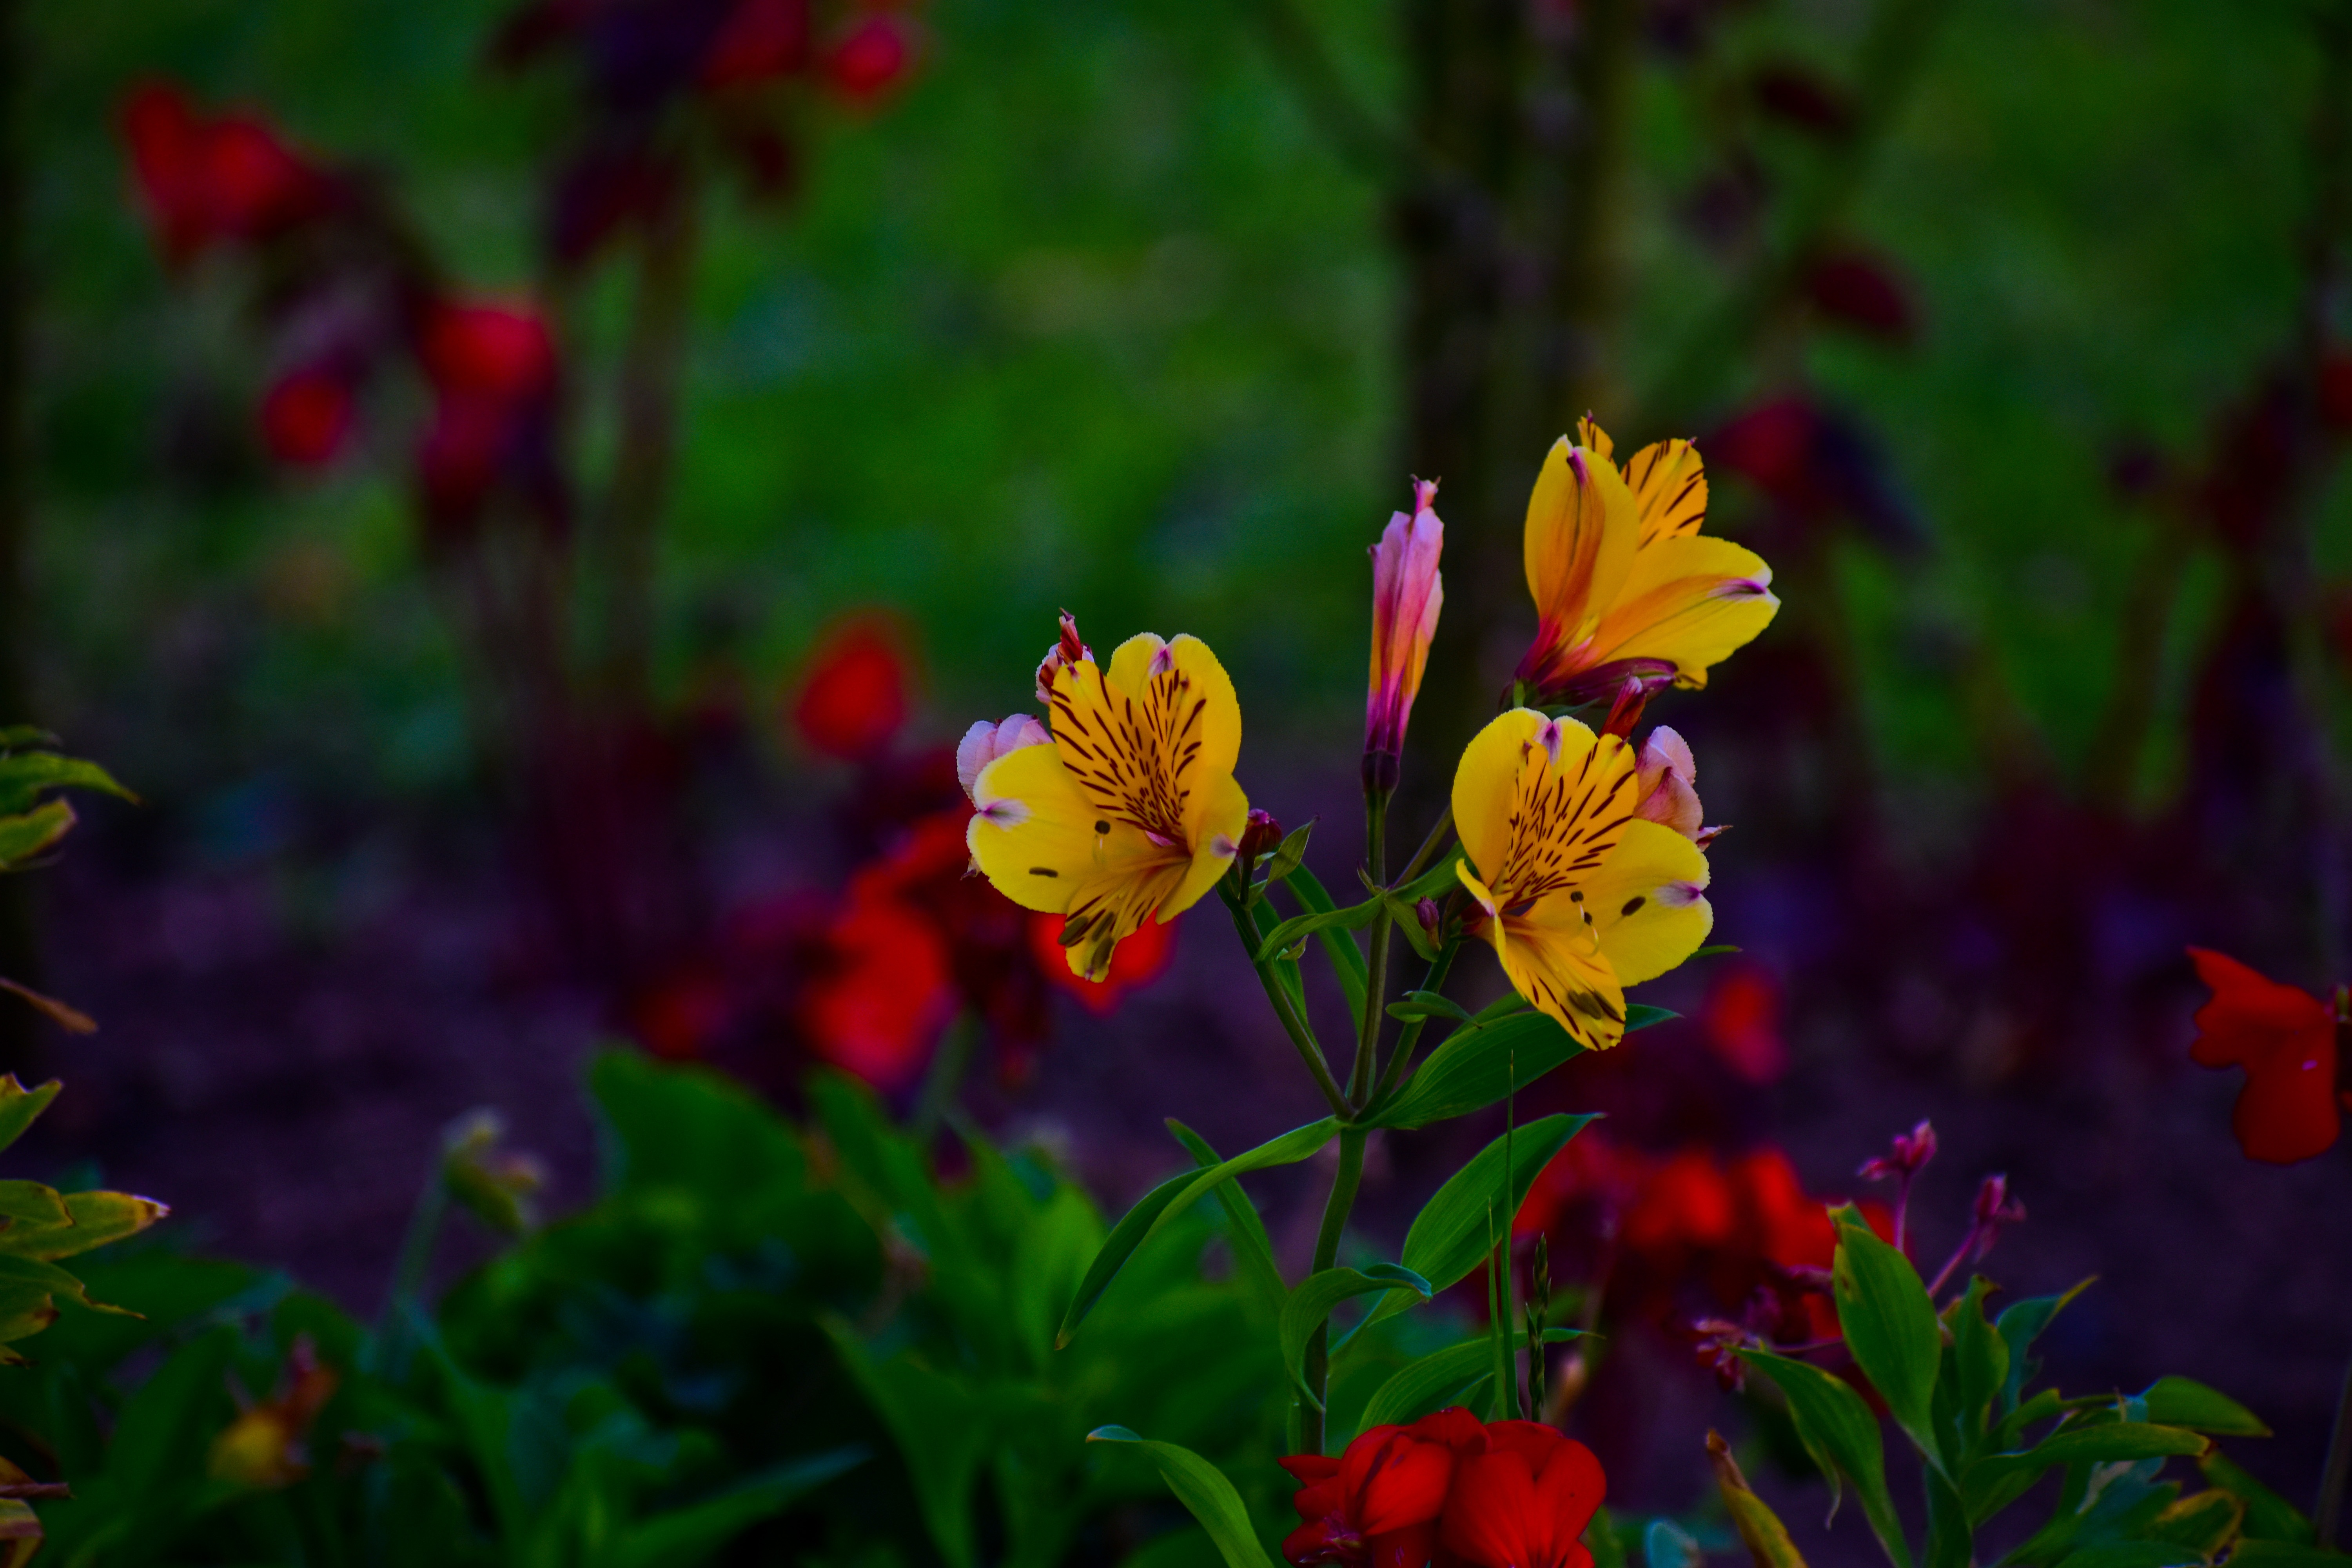 113430 Screensavers and Wallpapers Flower Bed for phone. Download Flowers, Bloom, Flowering, Alstroemeria, Flower Bed, Flowerbed pictures for free